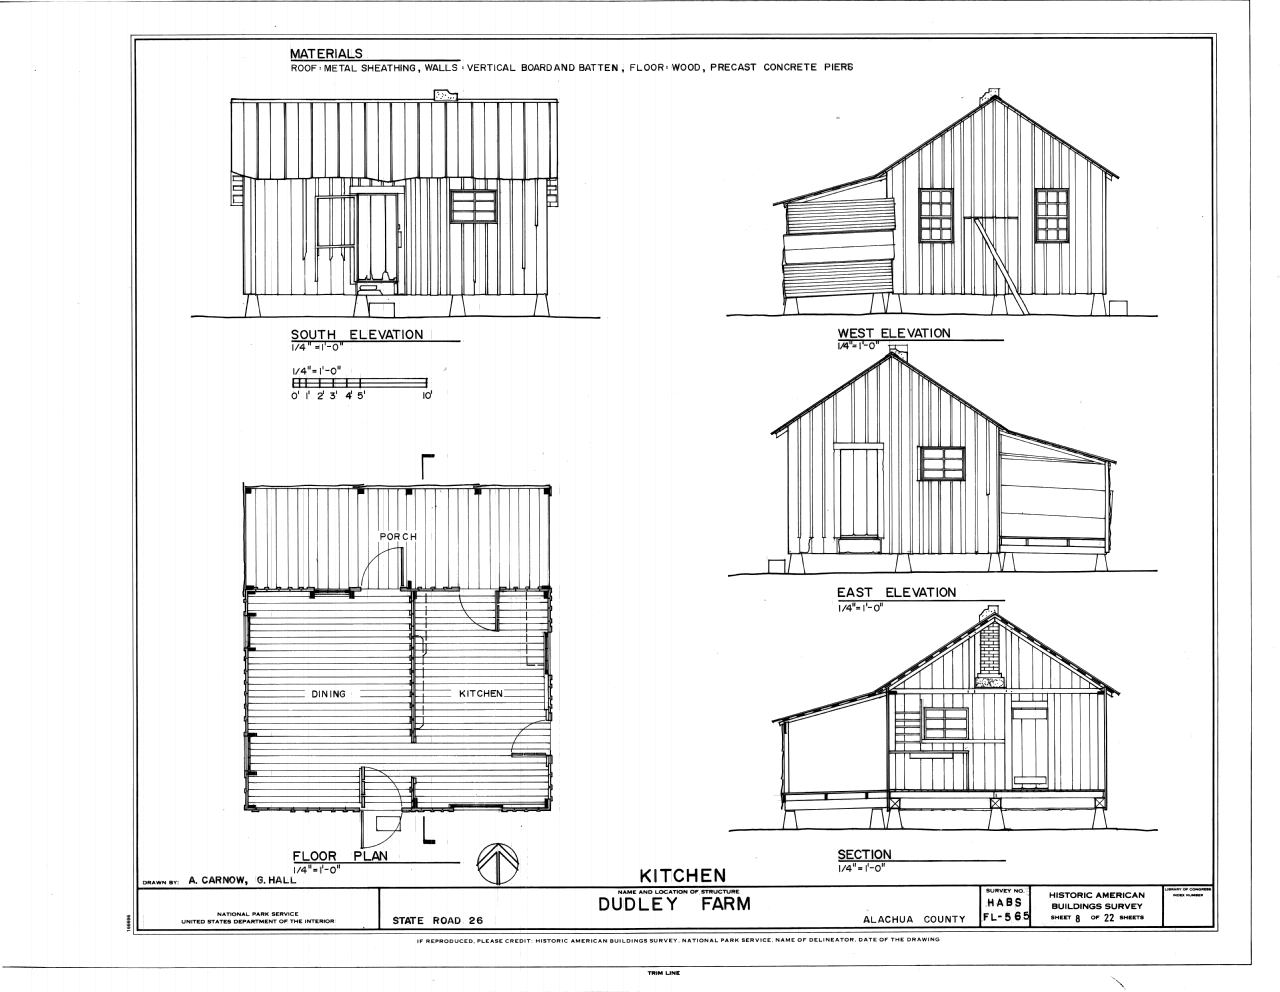 Elevation Wood Flooring : File kitchen elevations floor plan and section dudley